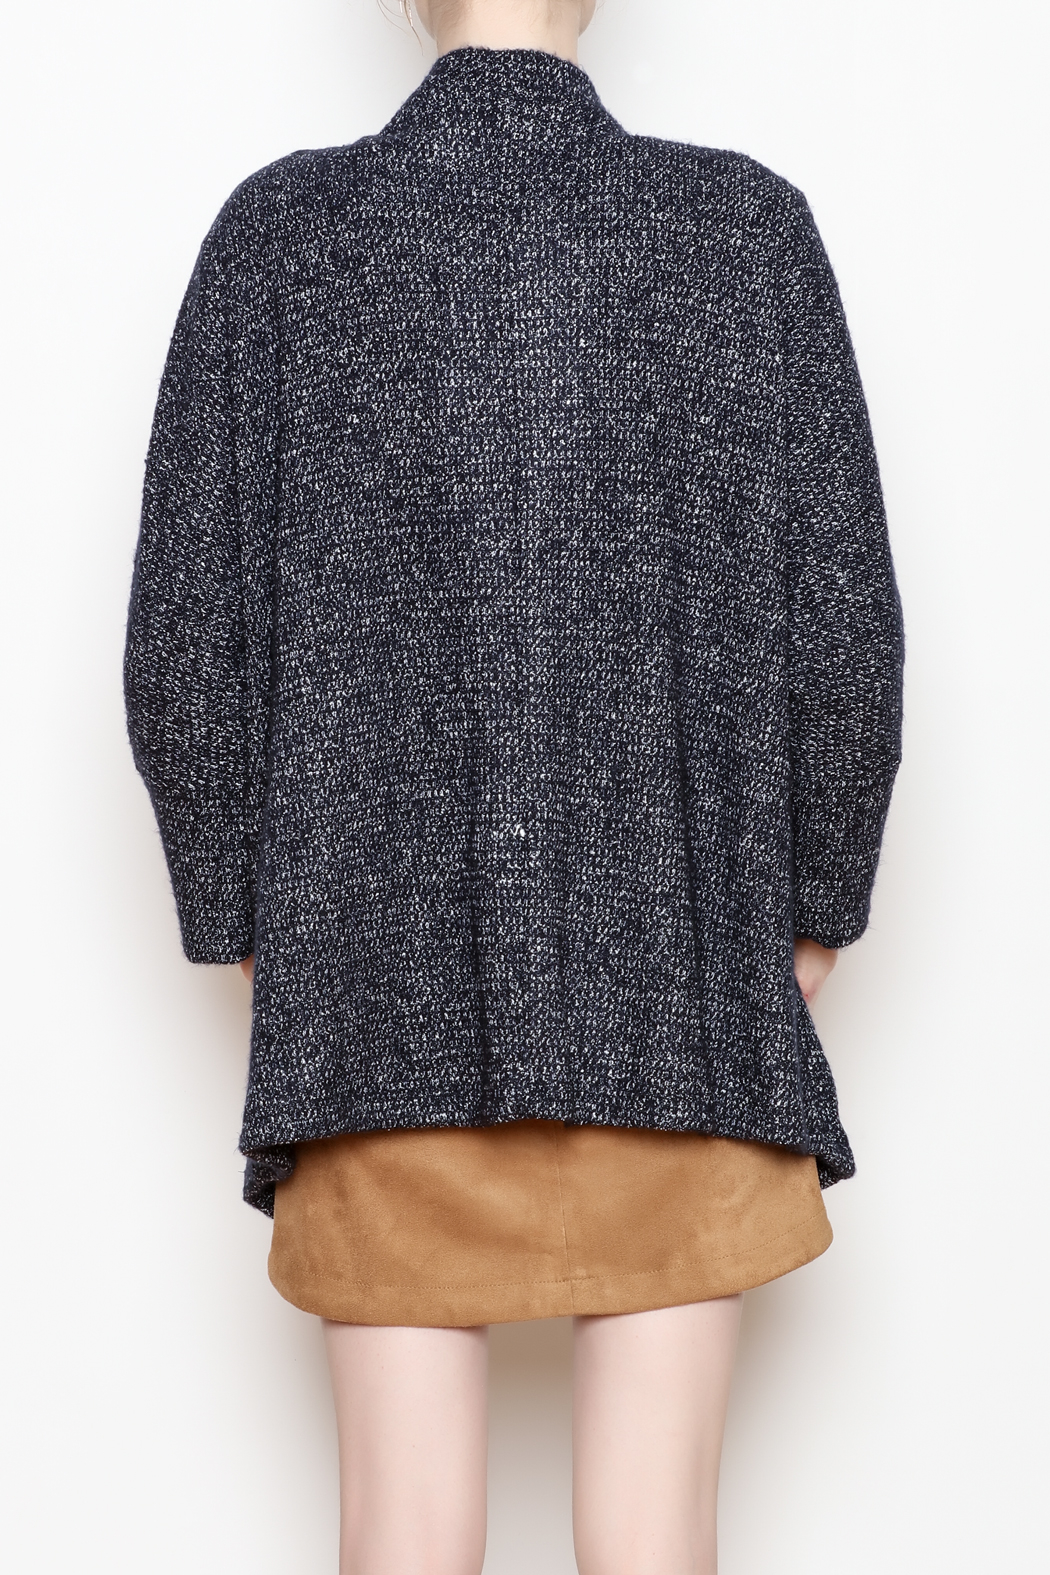 Cupcakes and Cashmere Gunnar Open Cardigan - Back Cropped Image